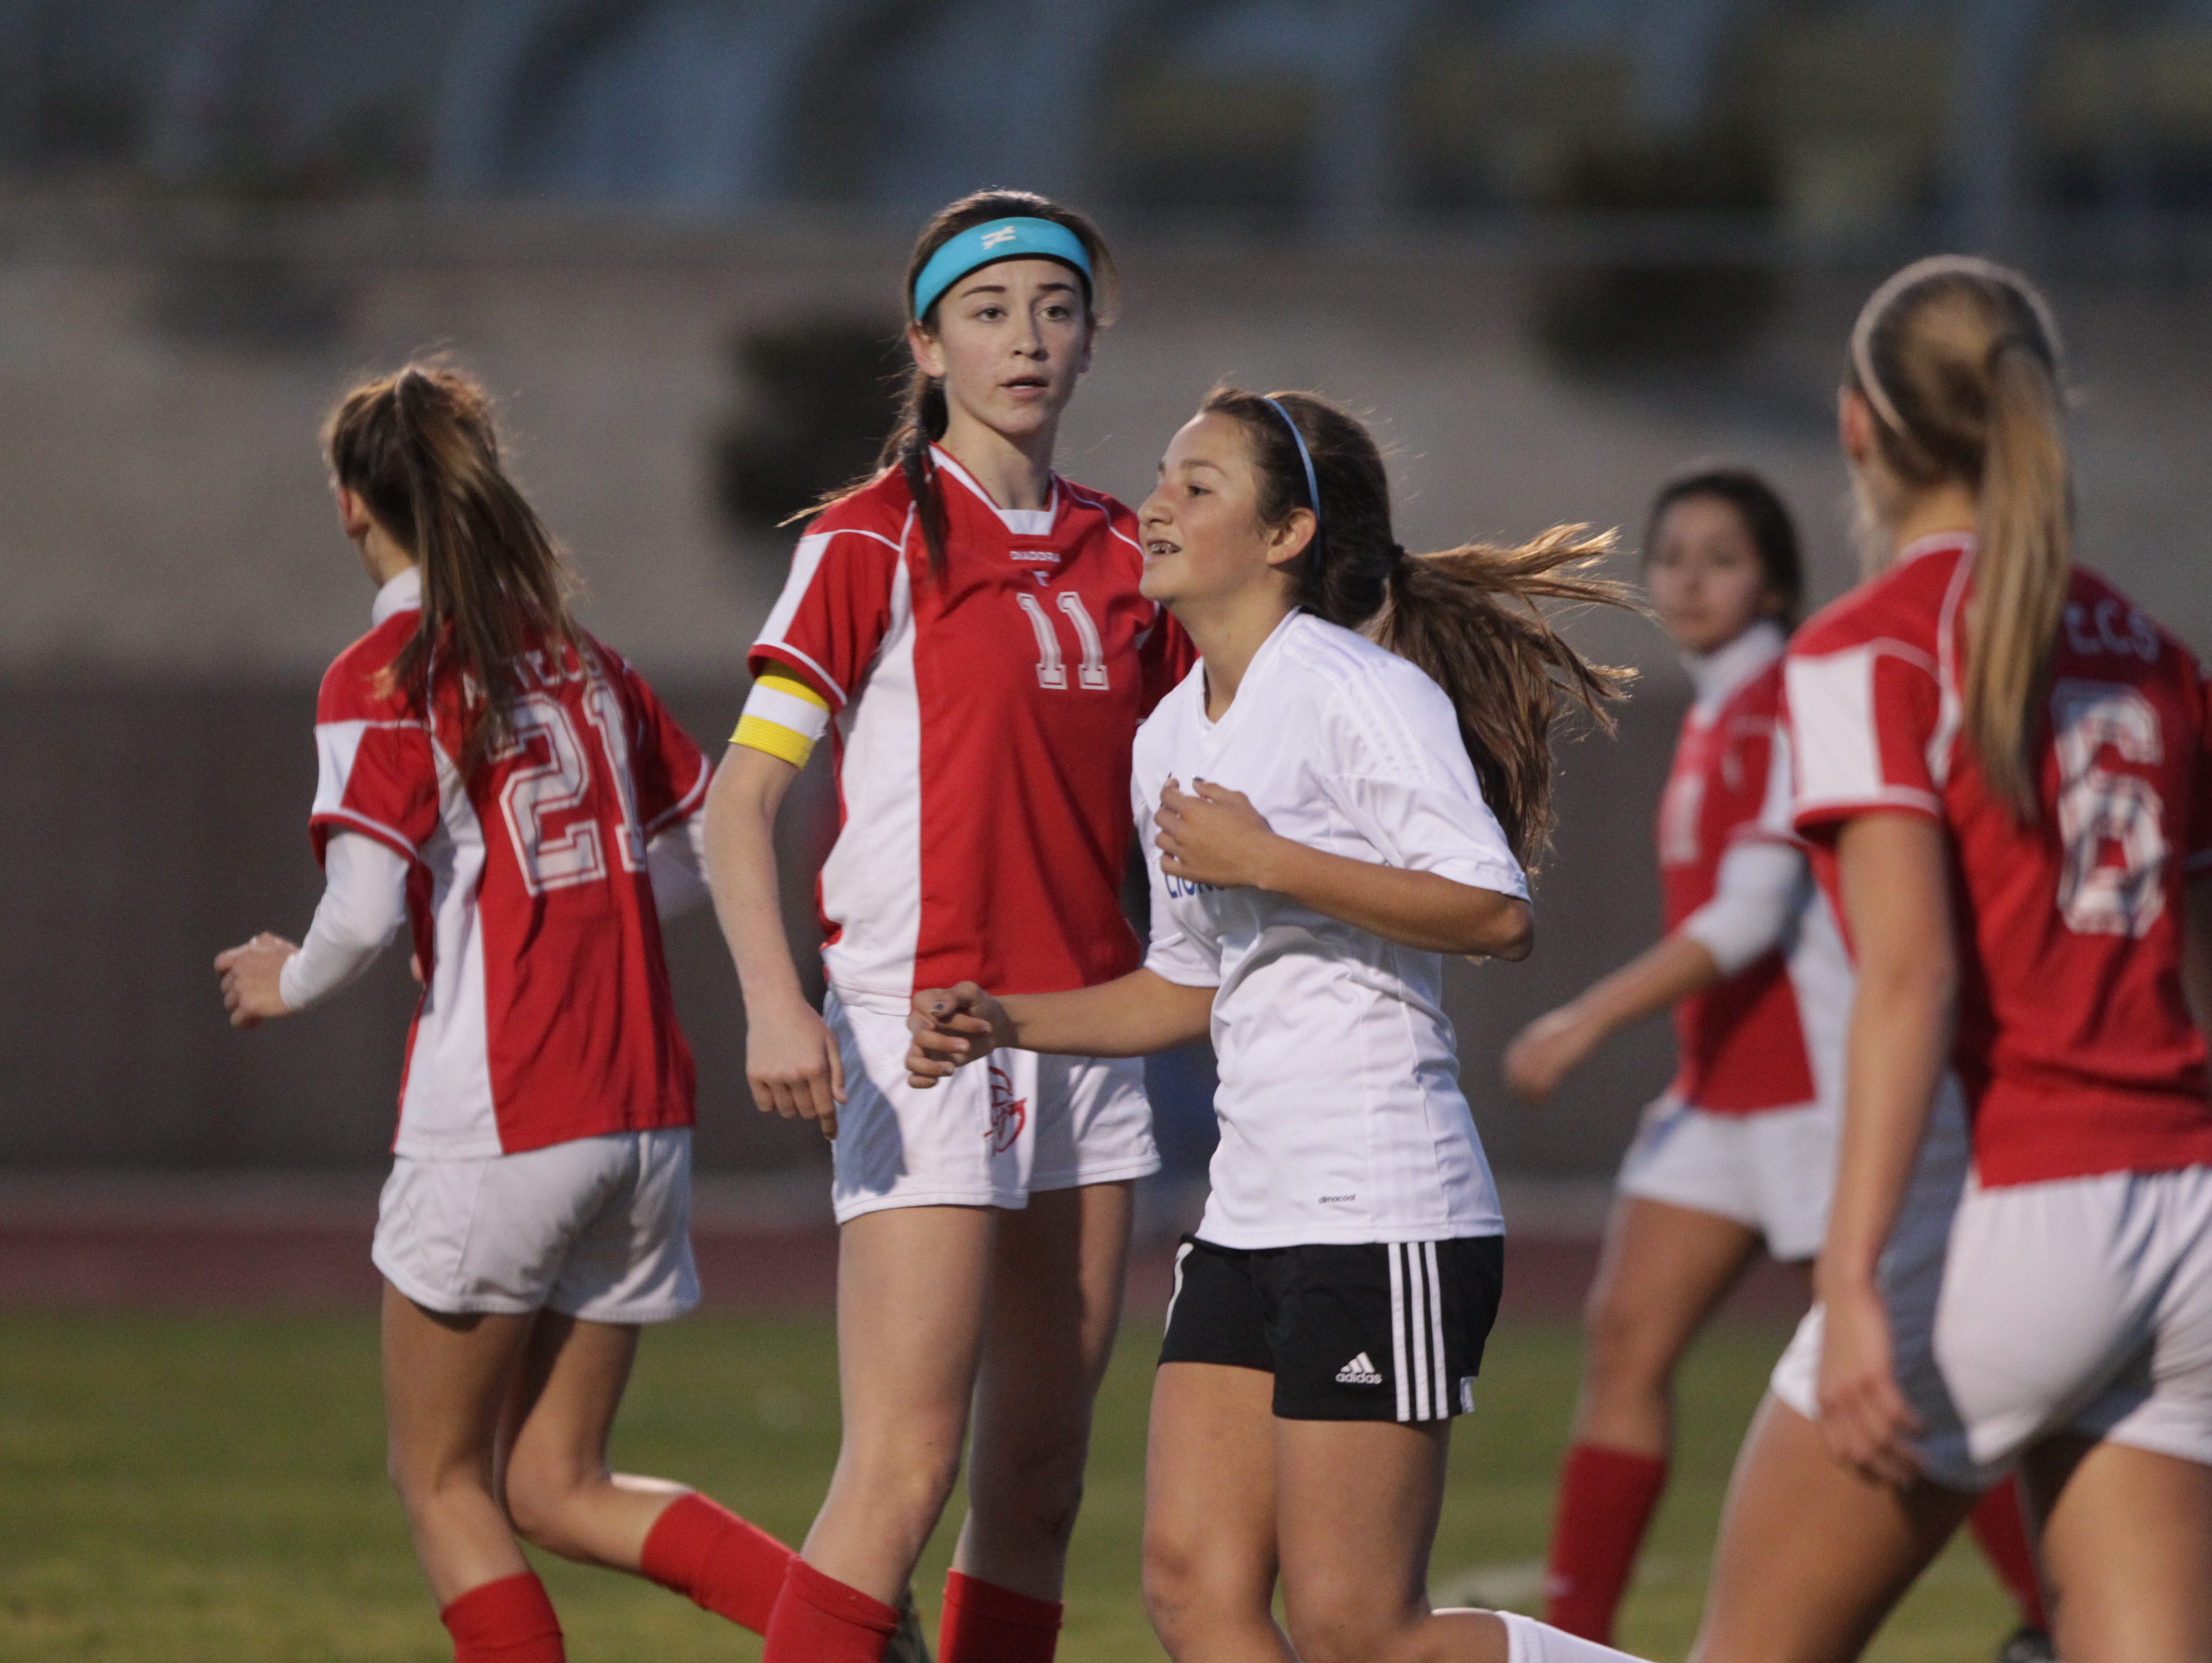 Aylin Figueroa Uribe is all smiles after scoring the third goal for Cathedral City High School during their game against Palm Desert High School on February 2, 2016.